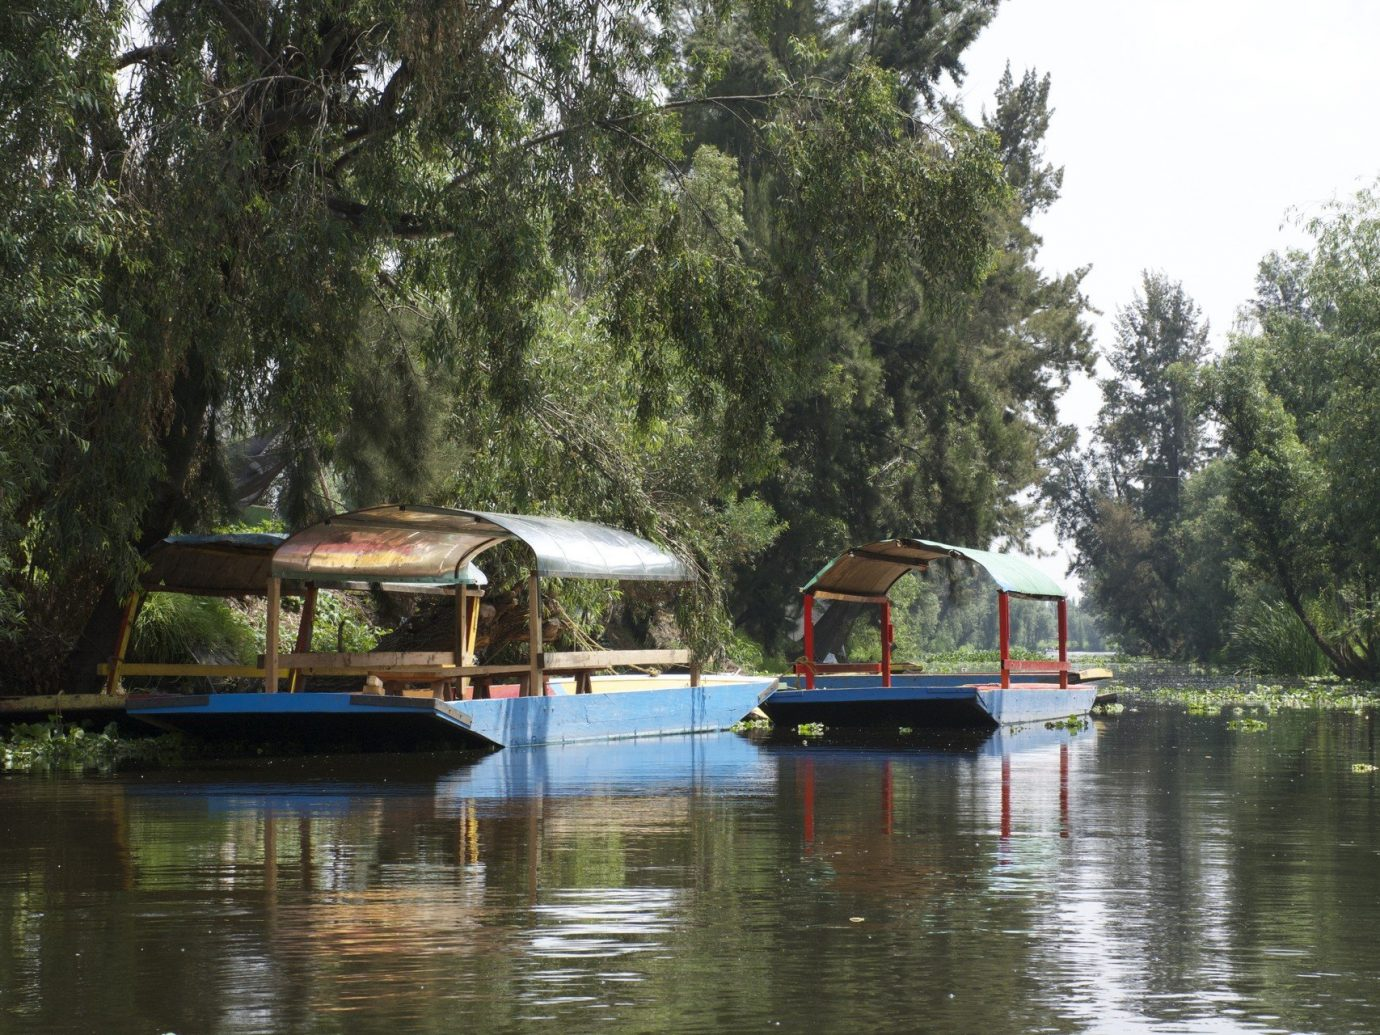 Boats calm Greenery Jetsetter Guides Lake Nature remote River serene trees water tree outdoor Boat bayou vehicle waterway boathouse boating Canal Raft Forest